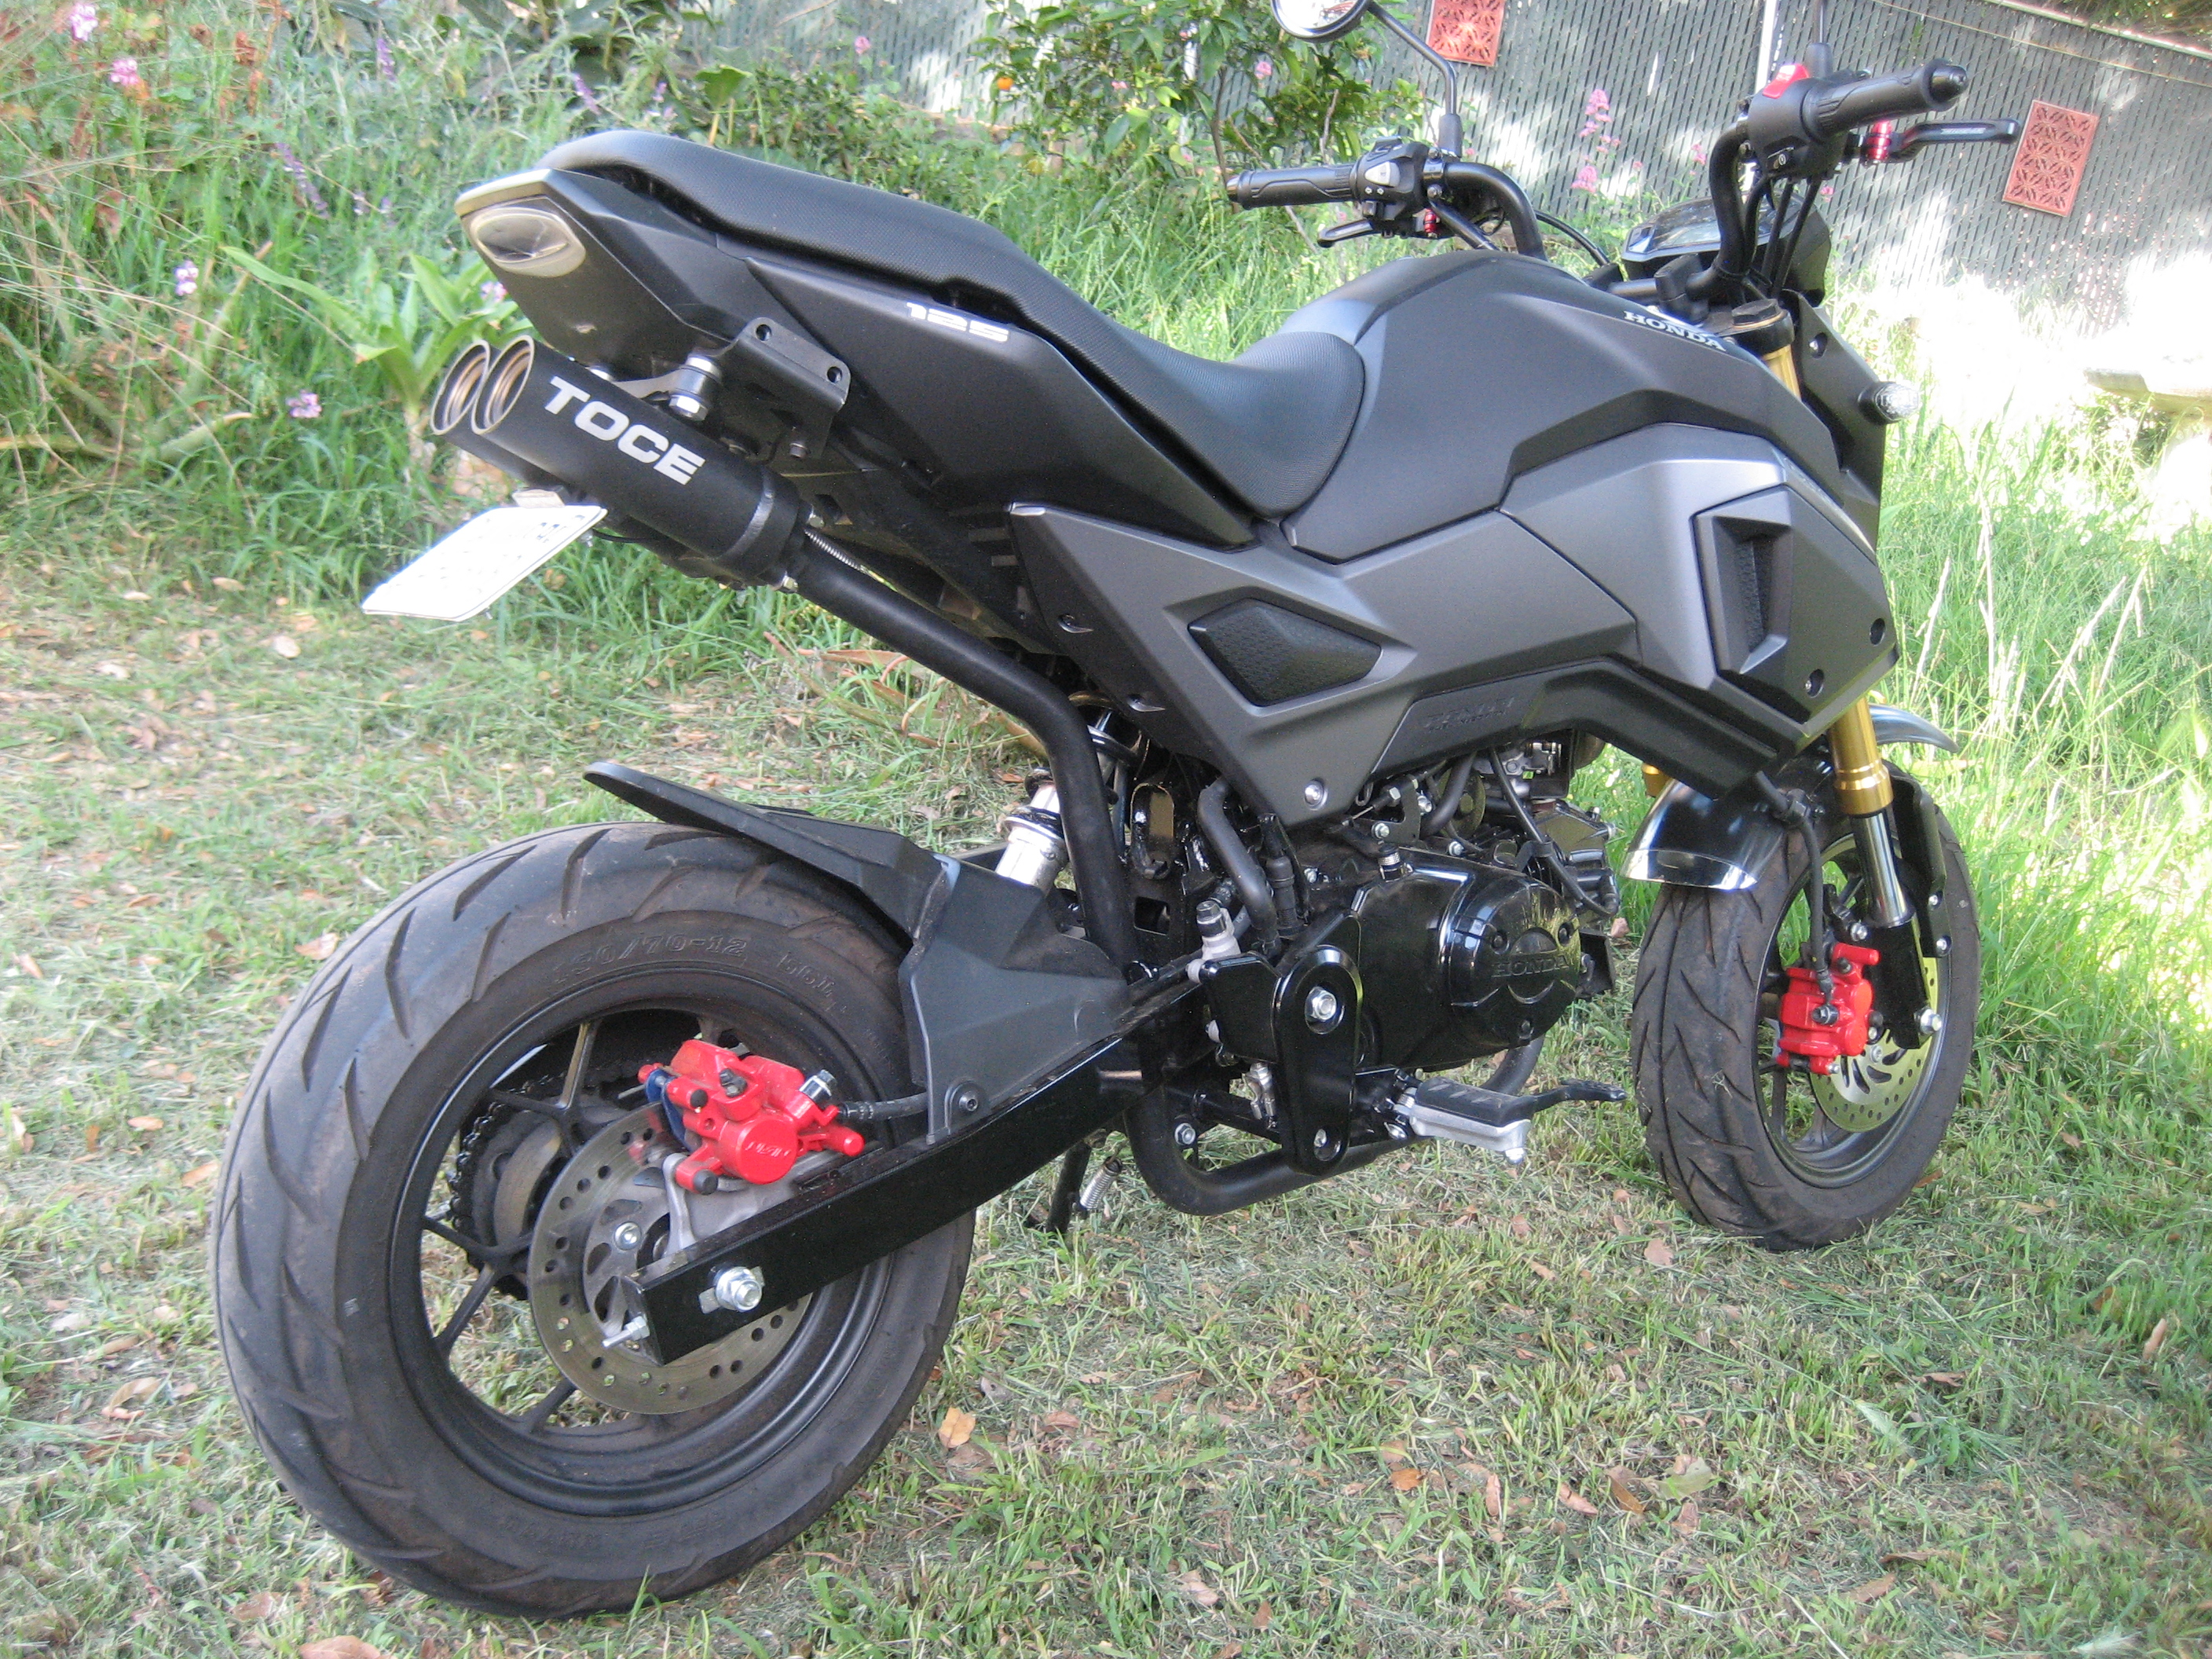 Which exhaust to buy? Msx125 sf-img_1101.jpg